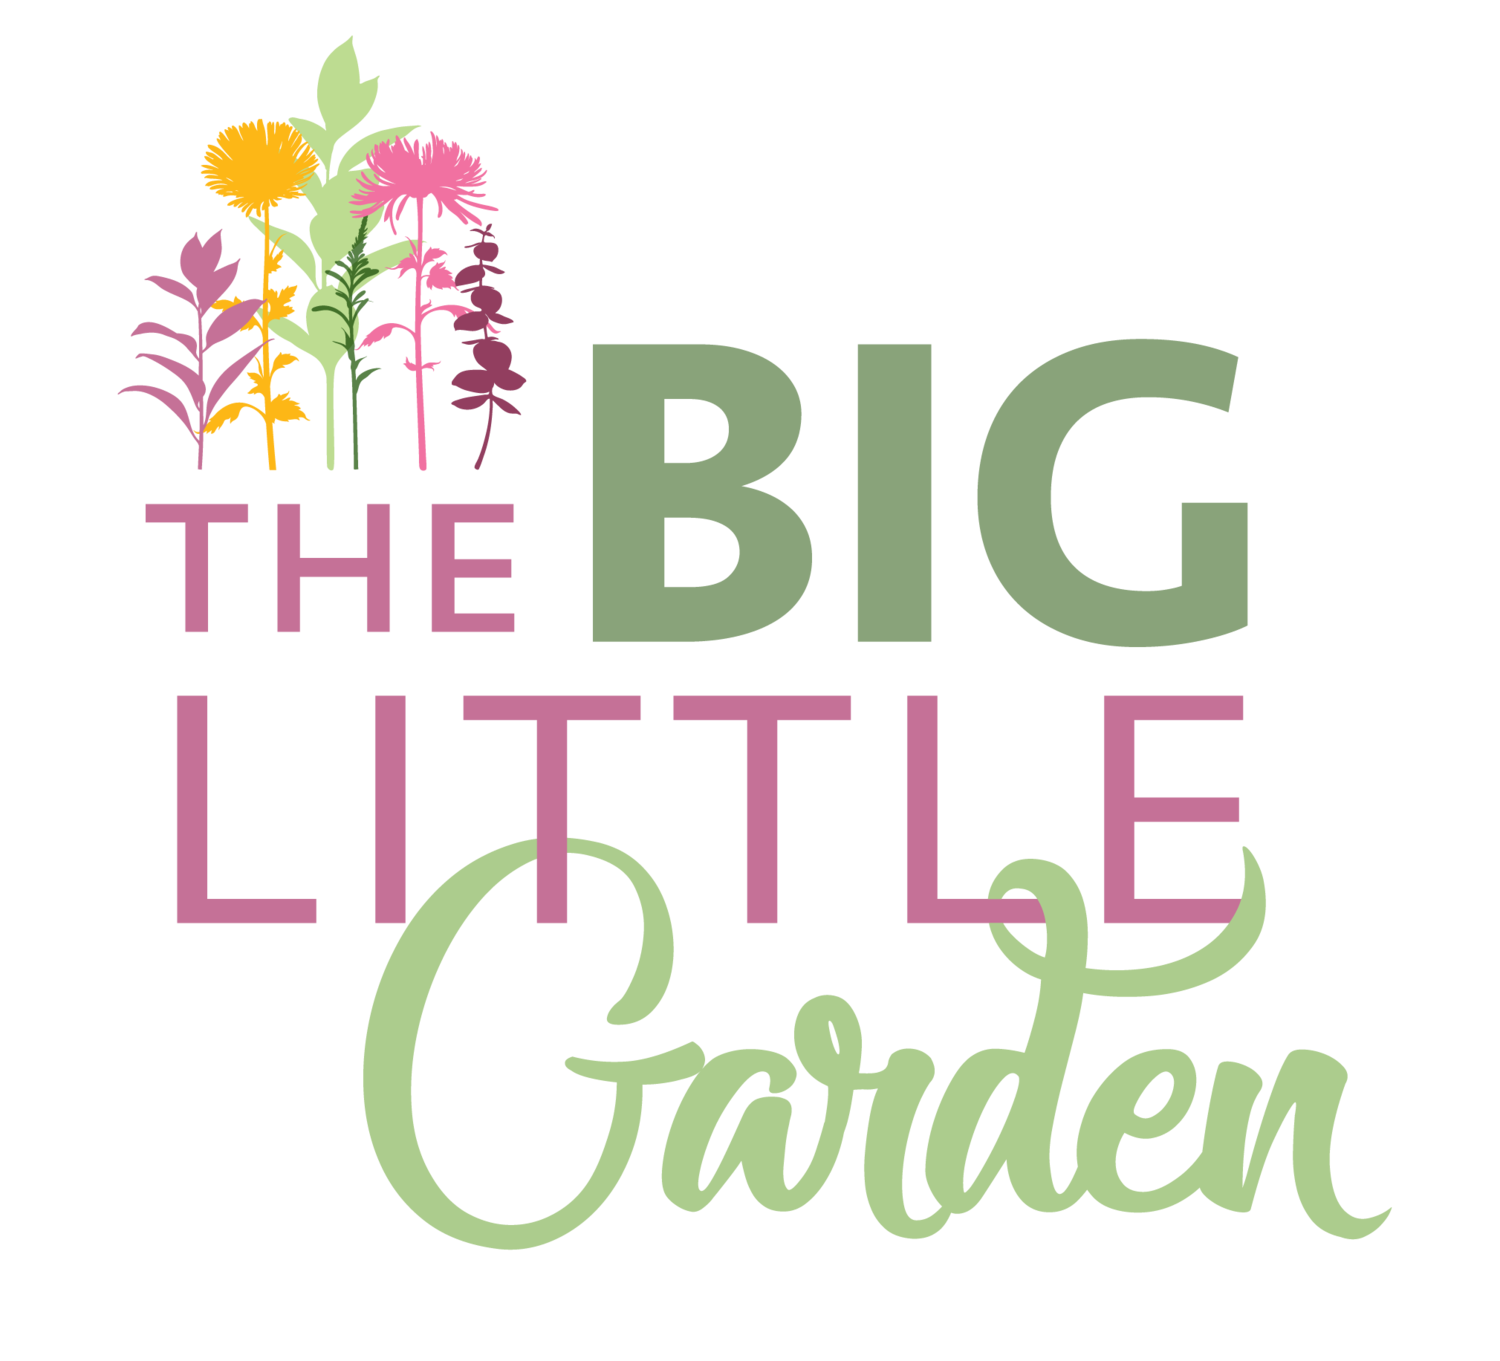 The Big Little Garden